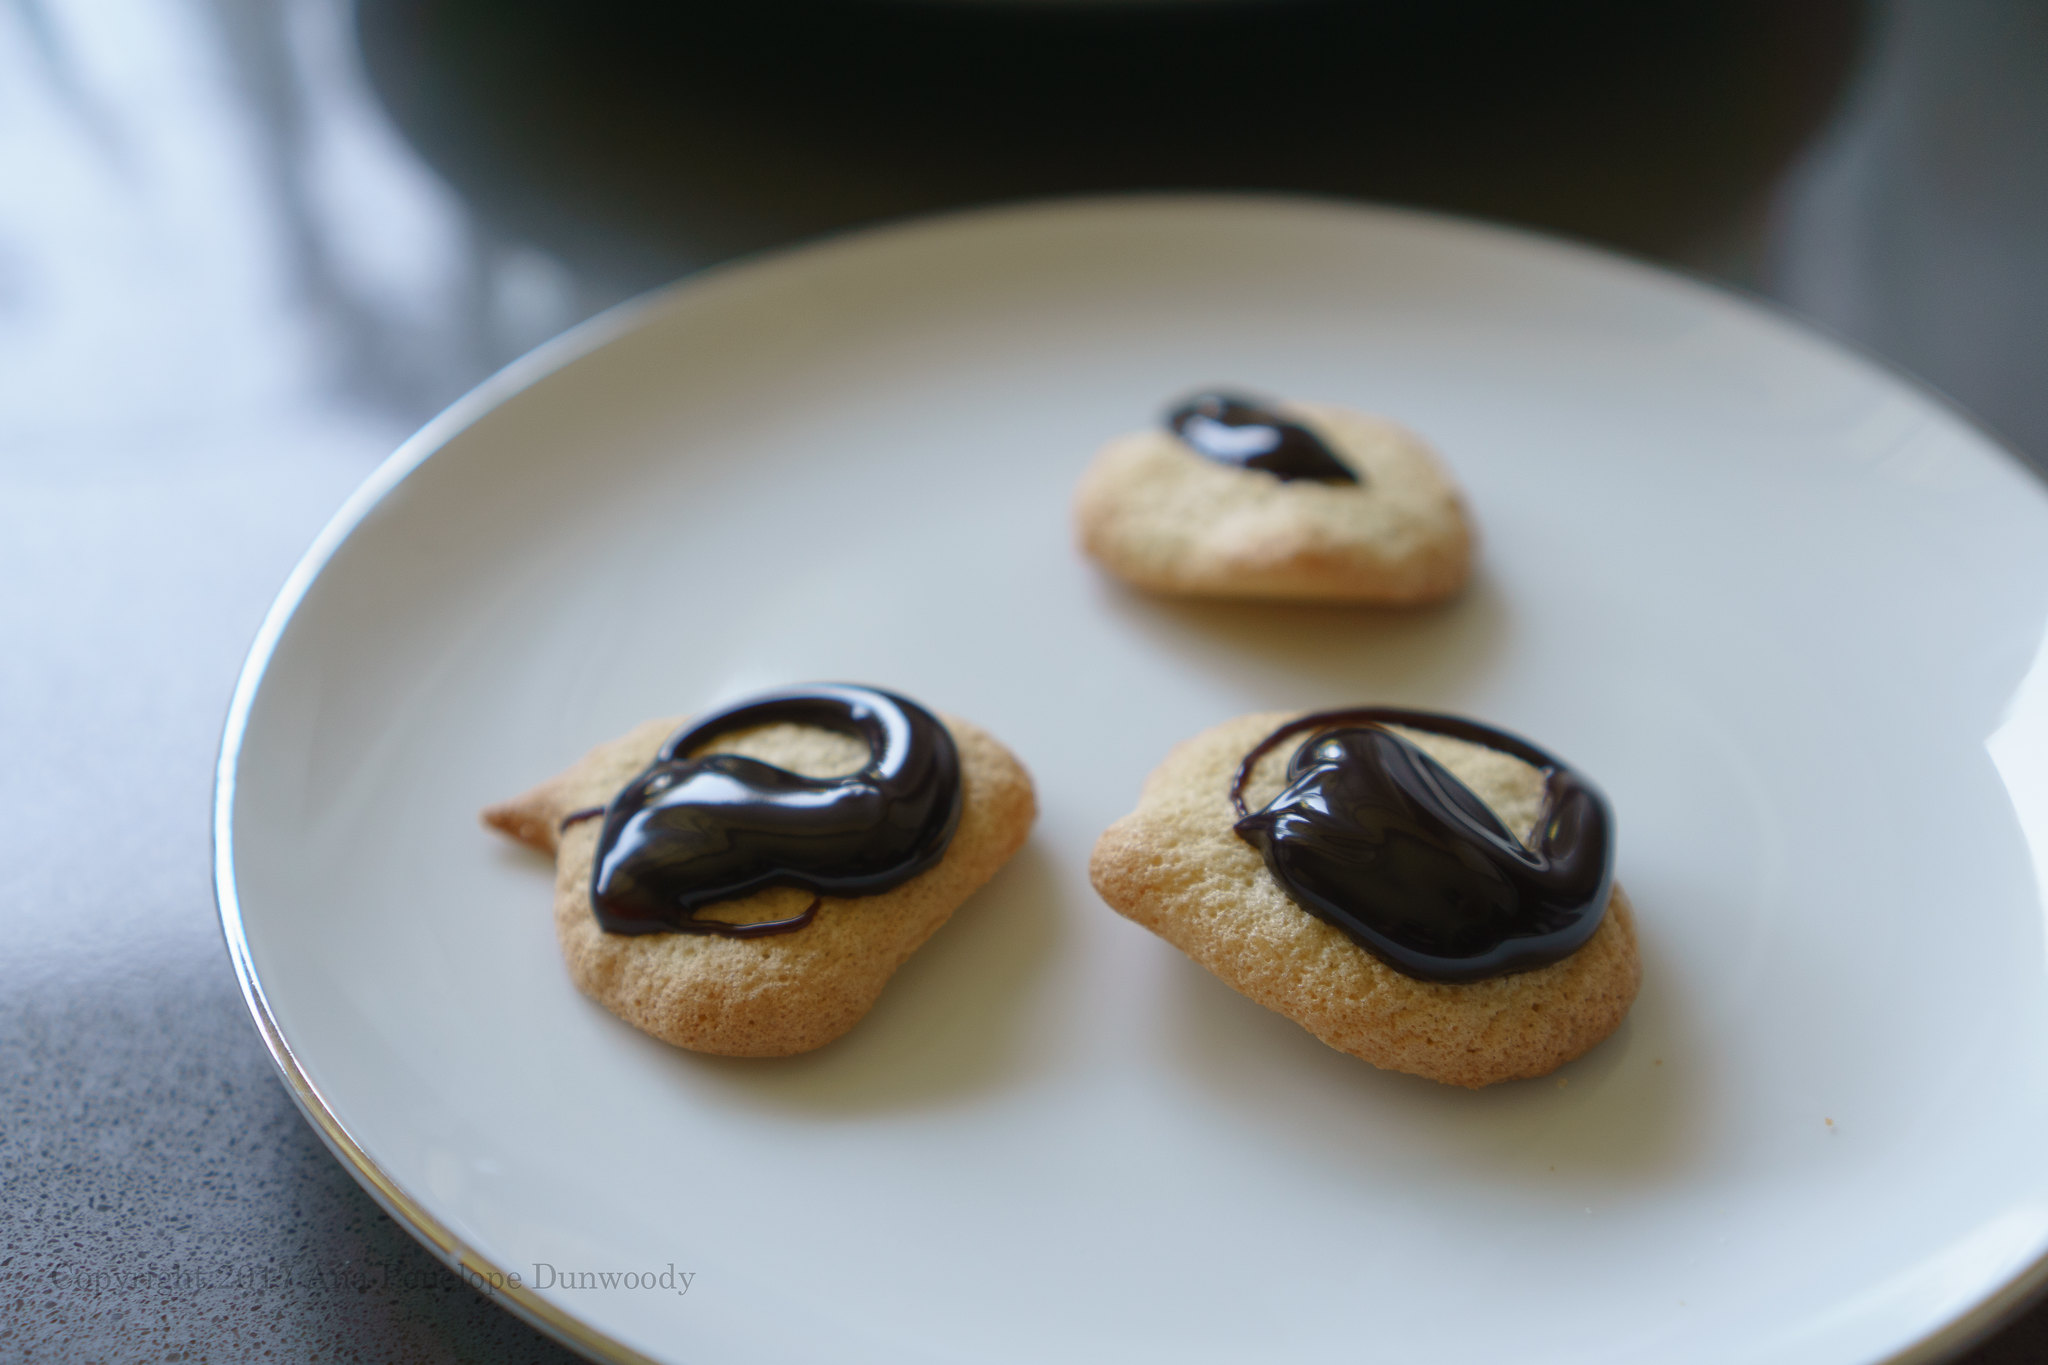 Sponge Drops with Dark Chocolate Sauce